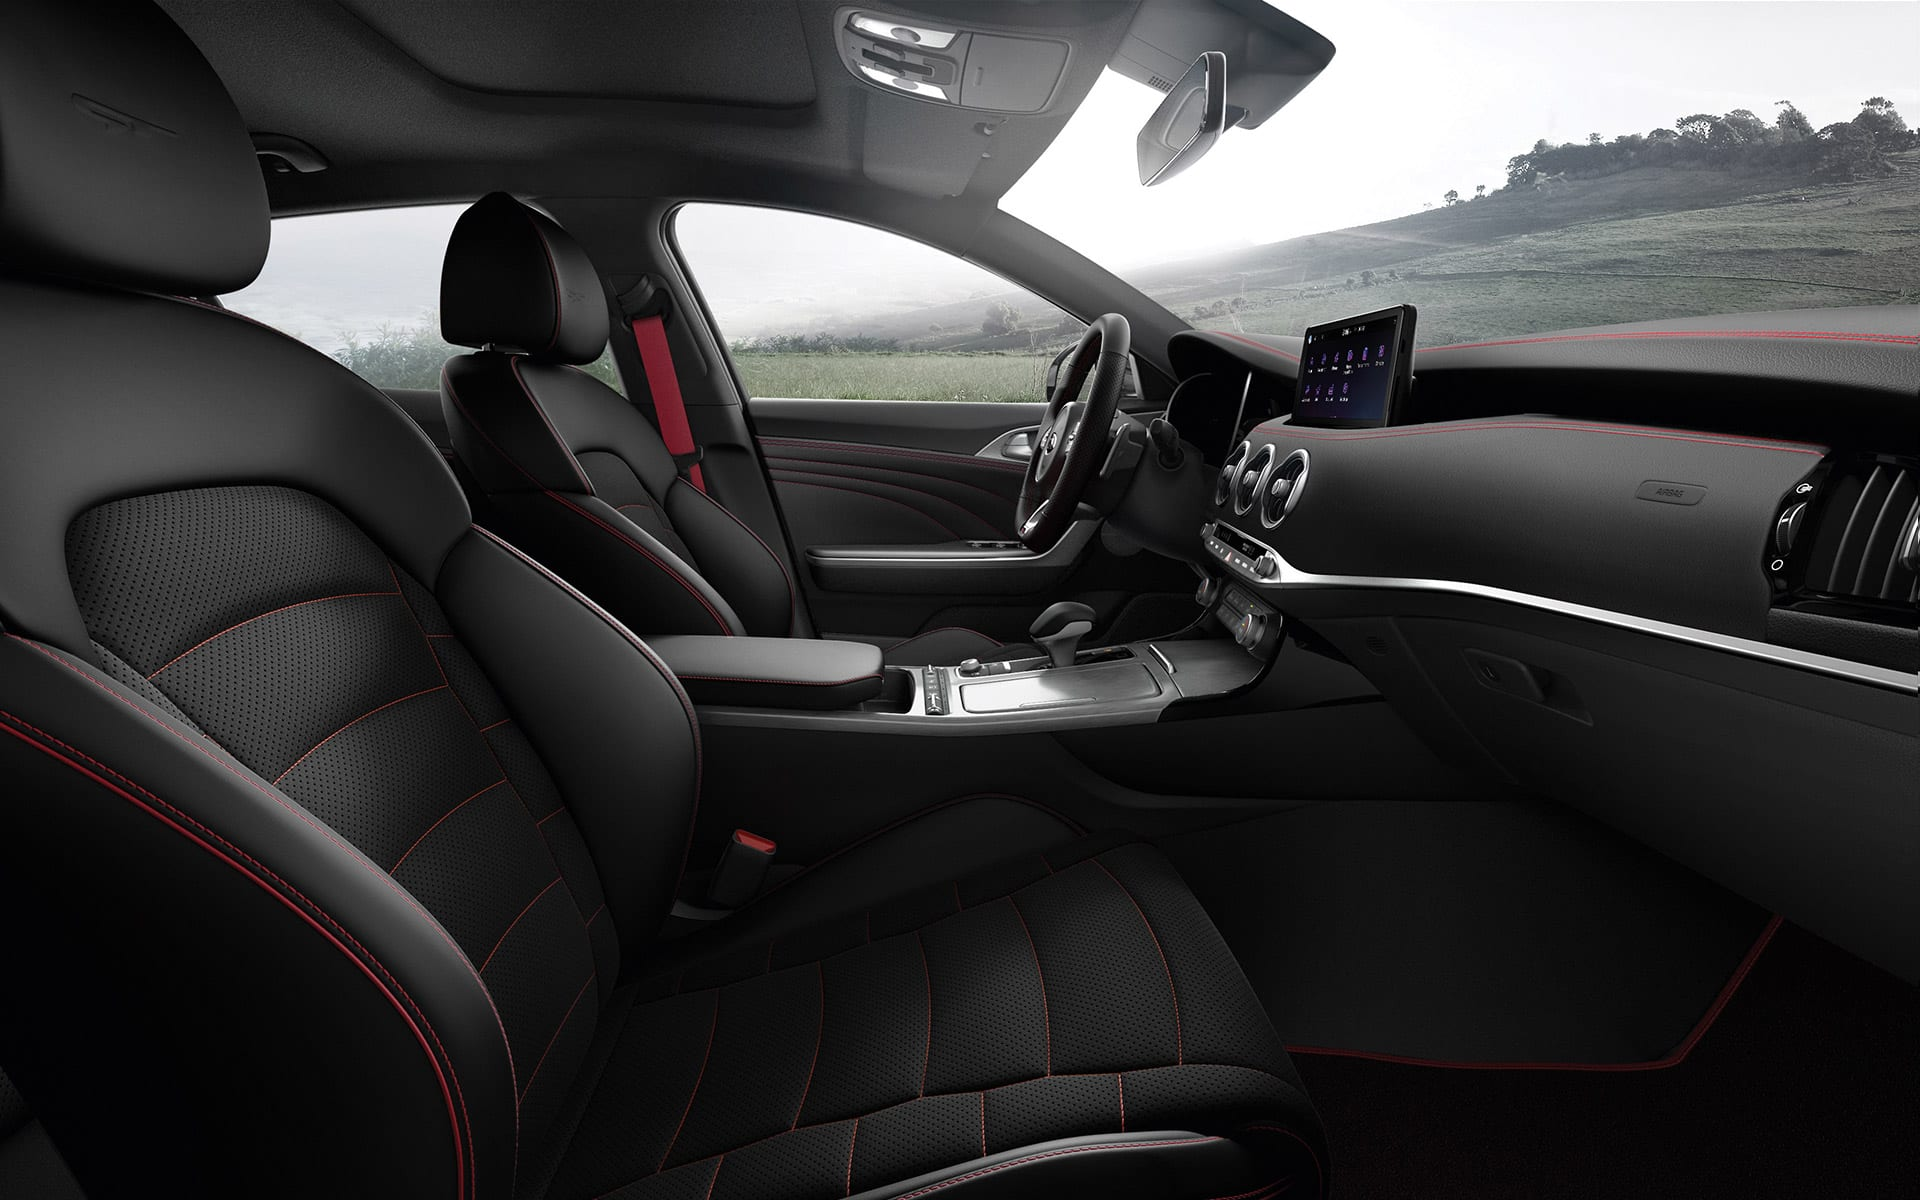 New Kia Stinger GT comfort and spacious cabin